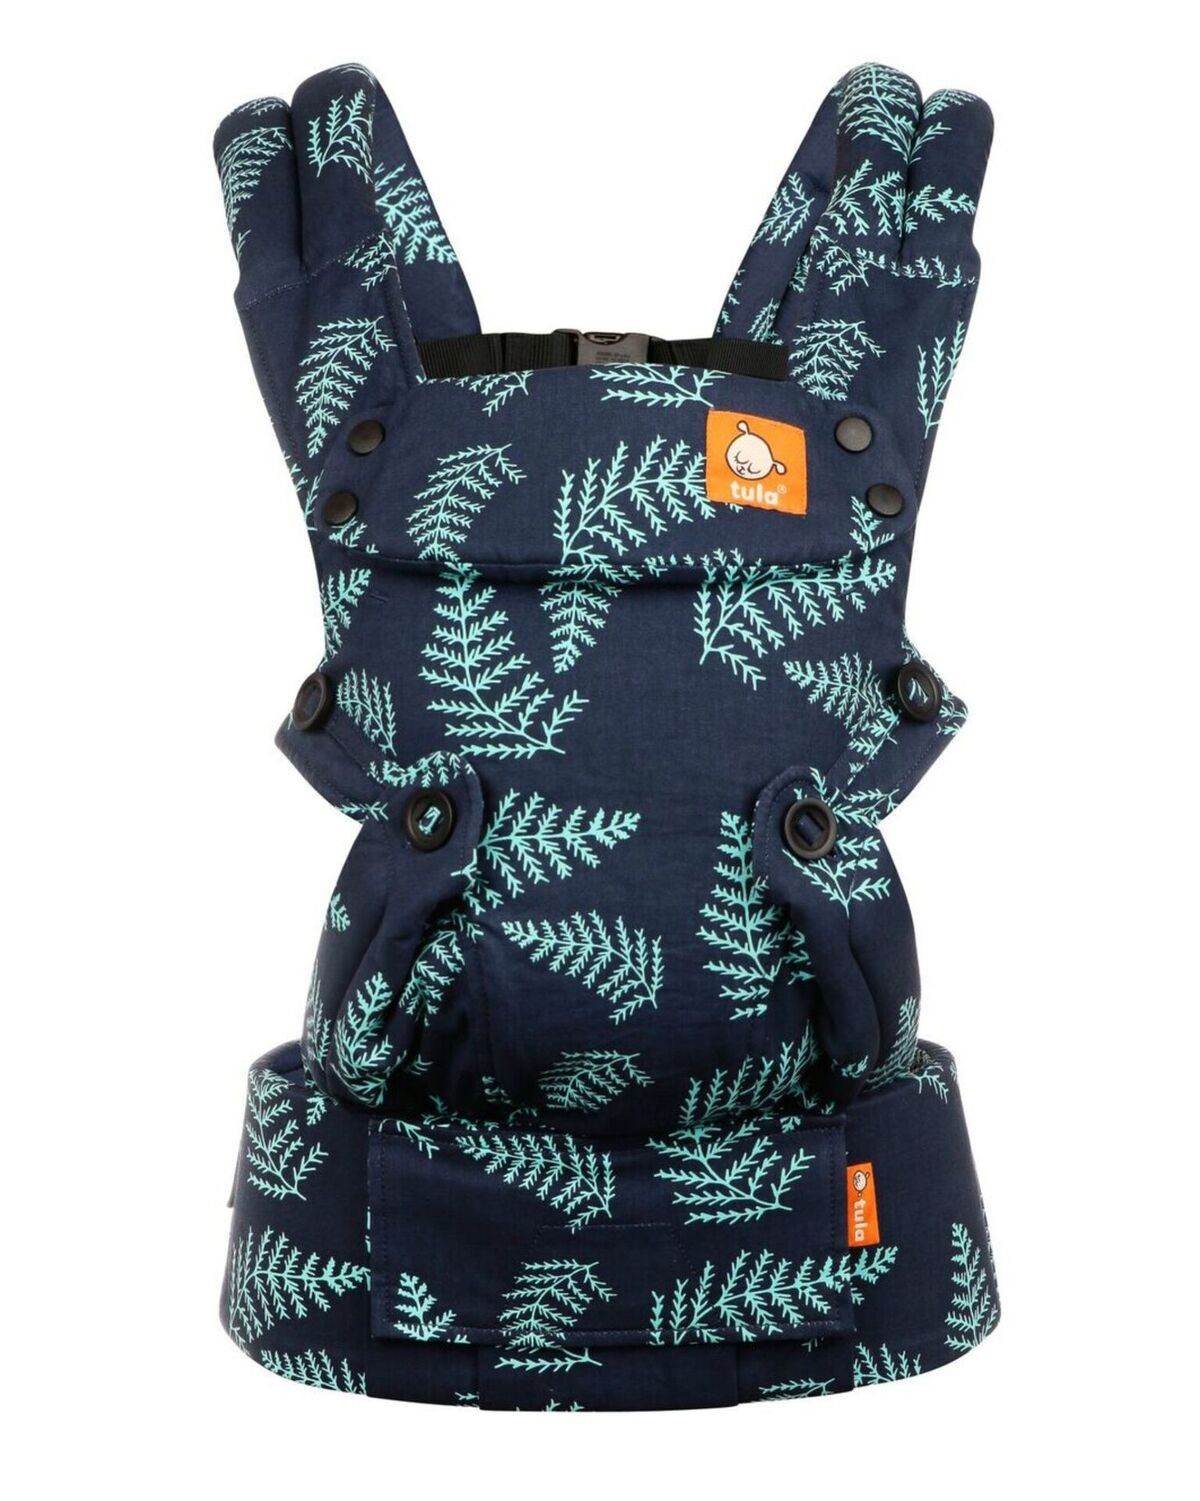 2c0cca573 Tula Explore Baby Carrier - Shop Baby Carriers at Jillian s Drawers